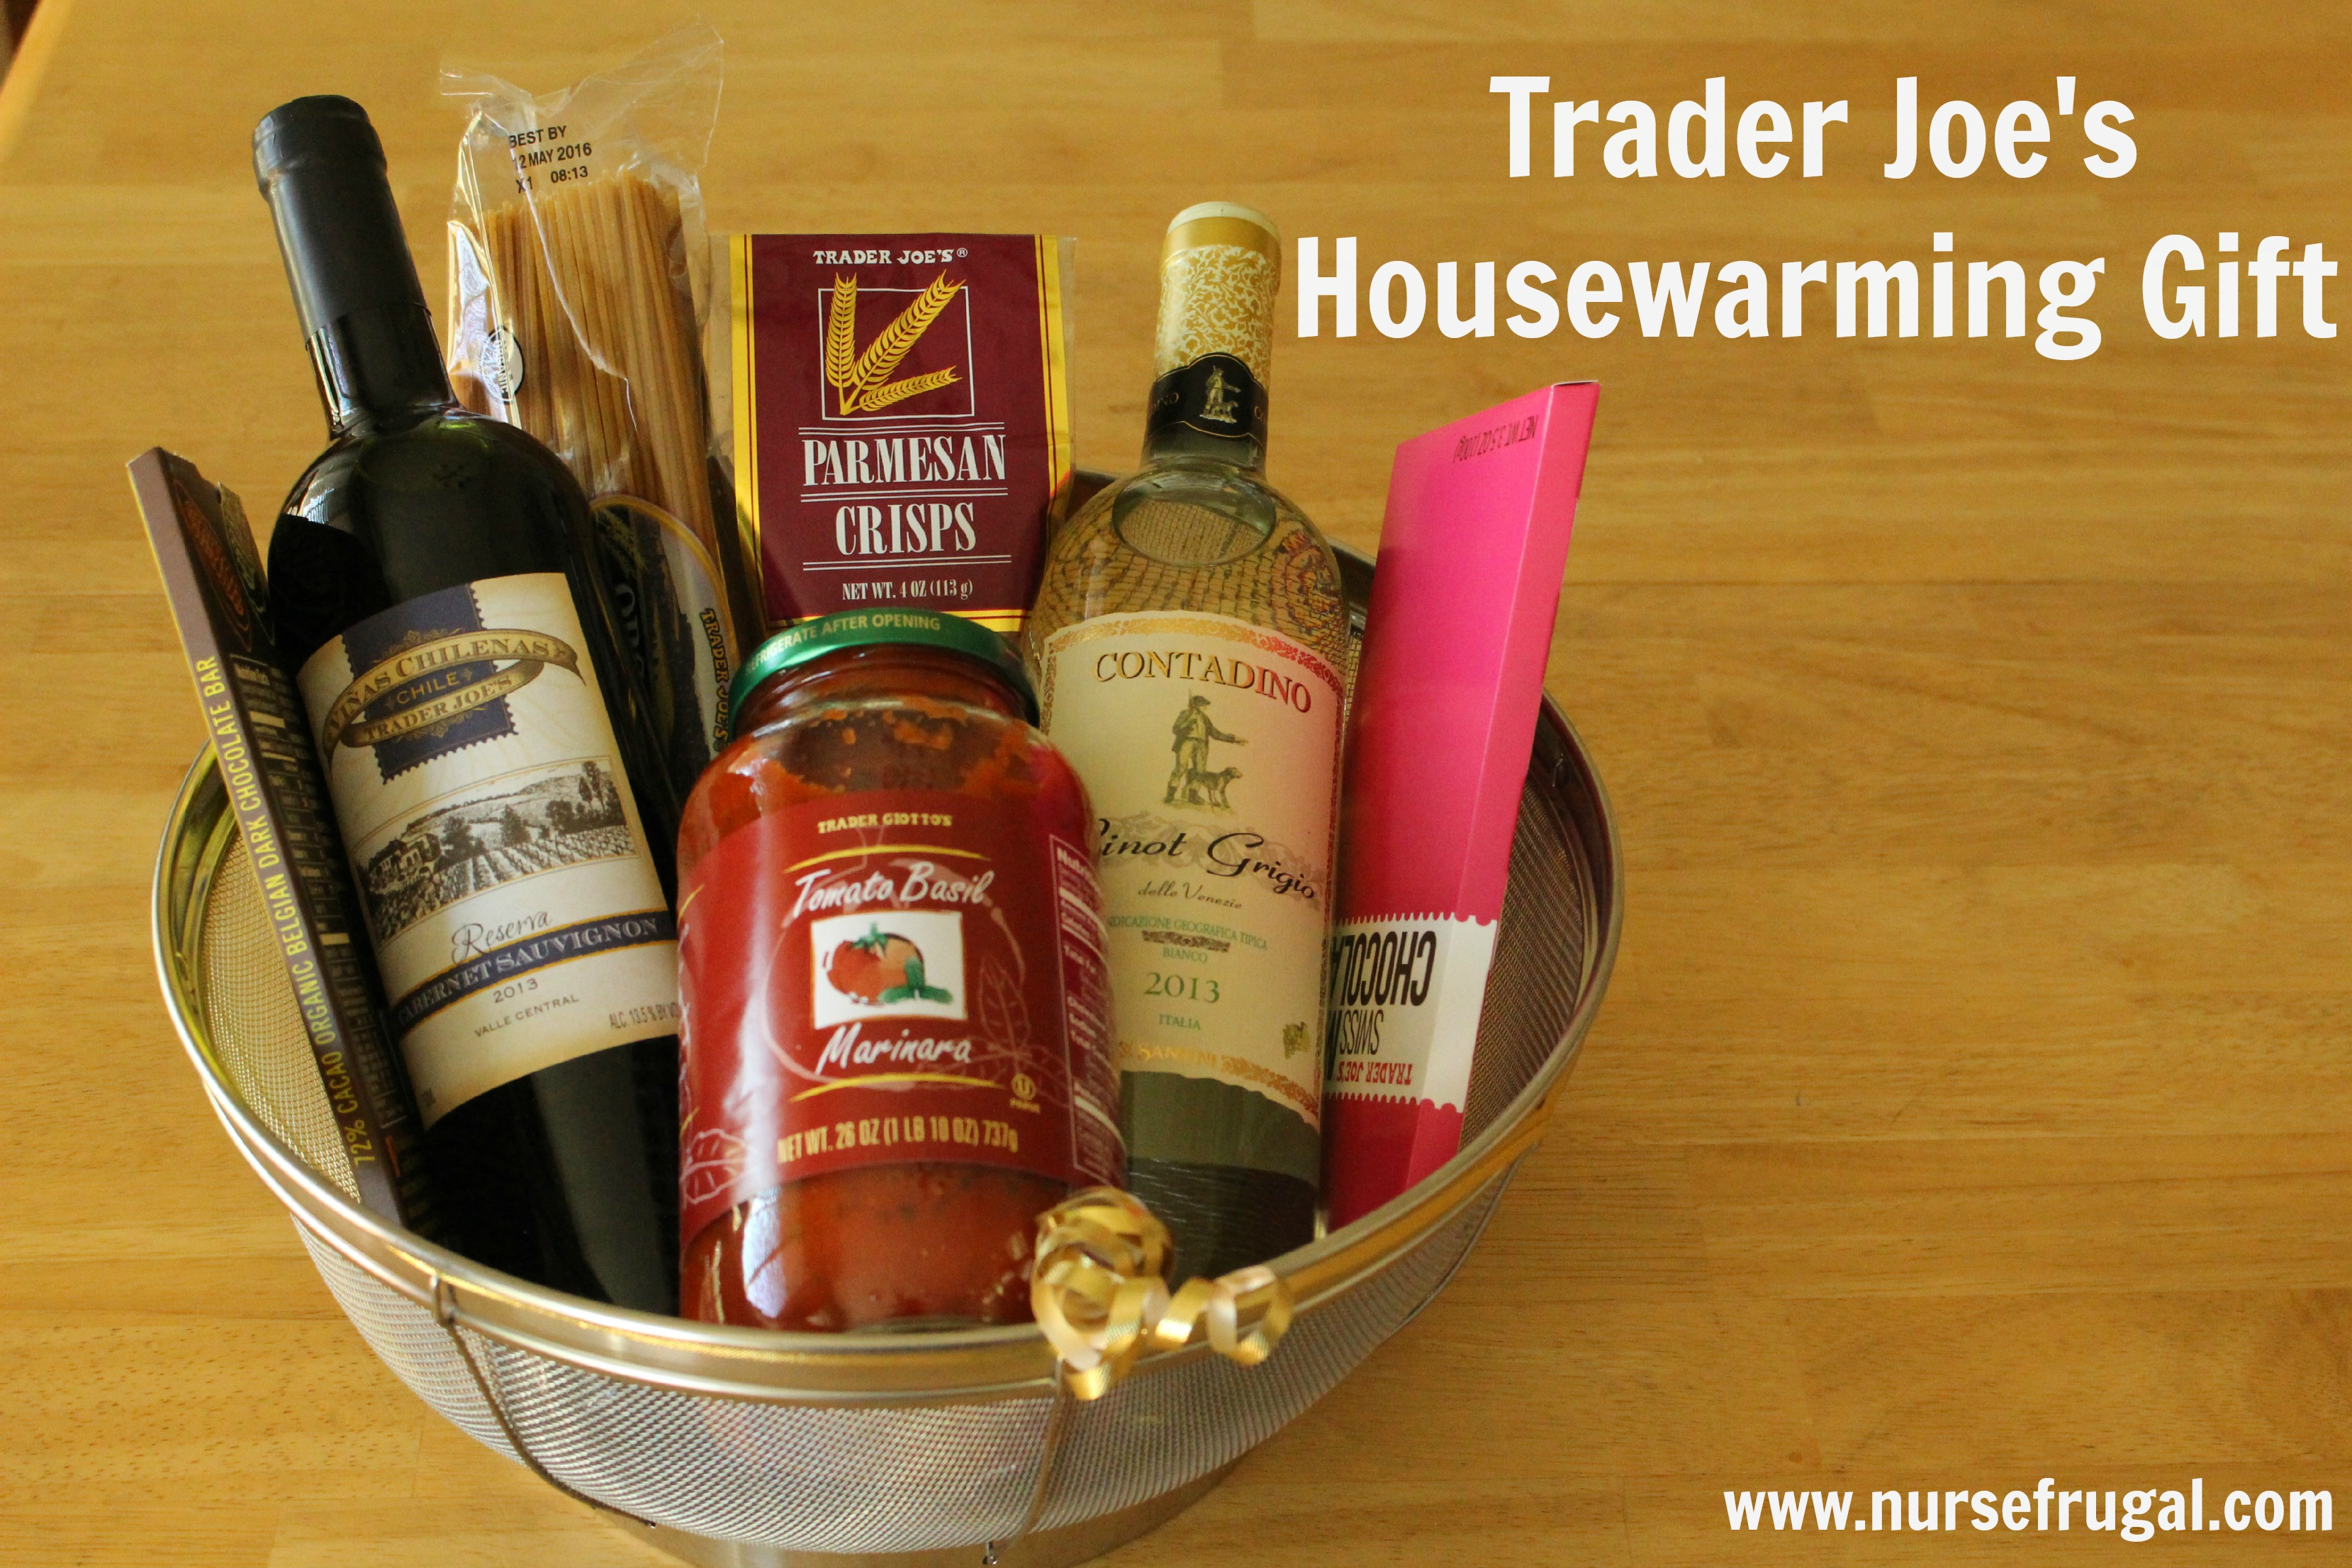 Housewarming gift idea nurse frugal What is house warming